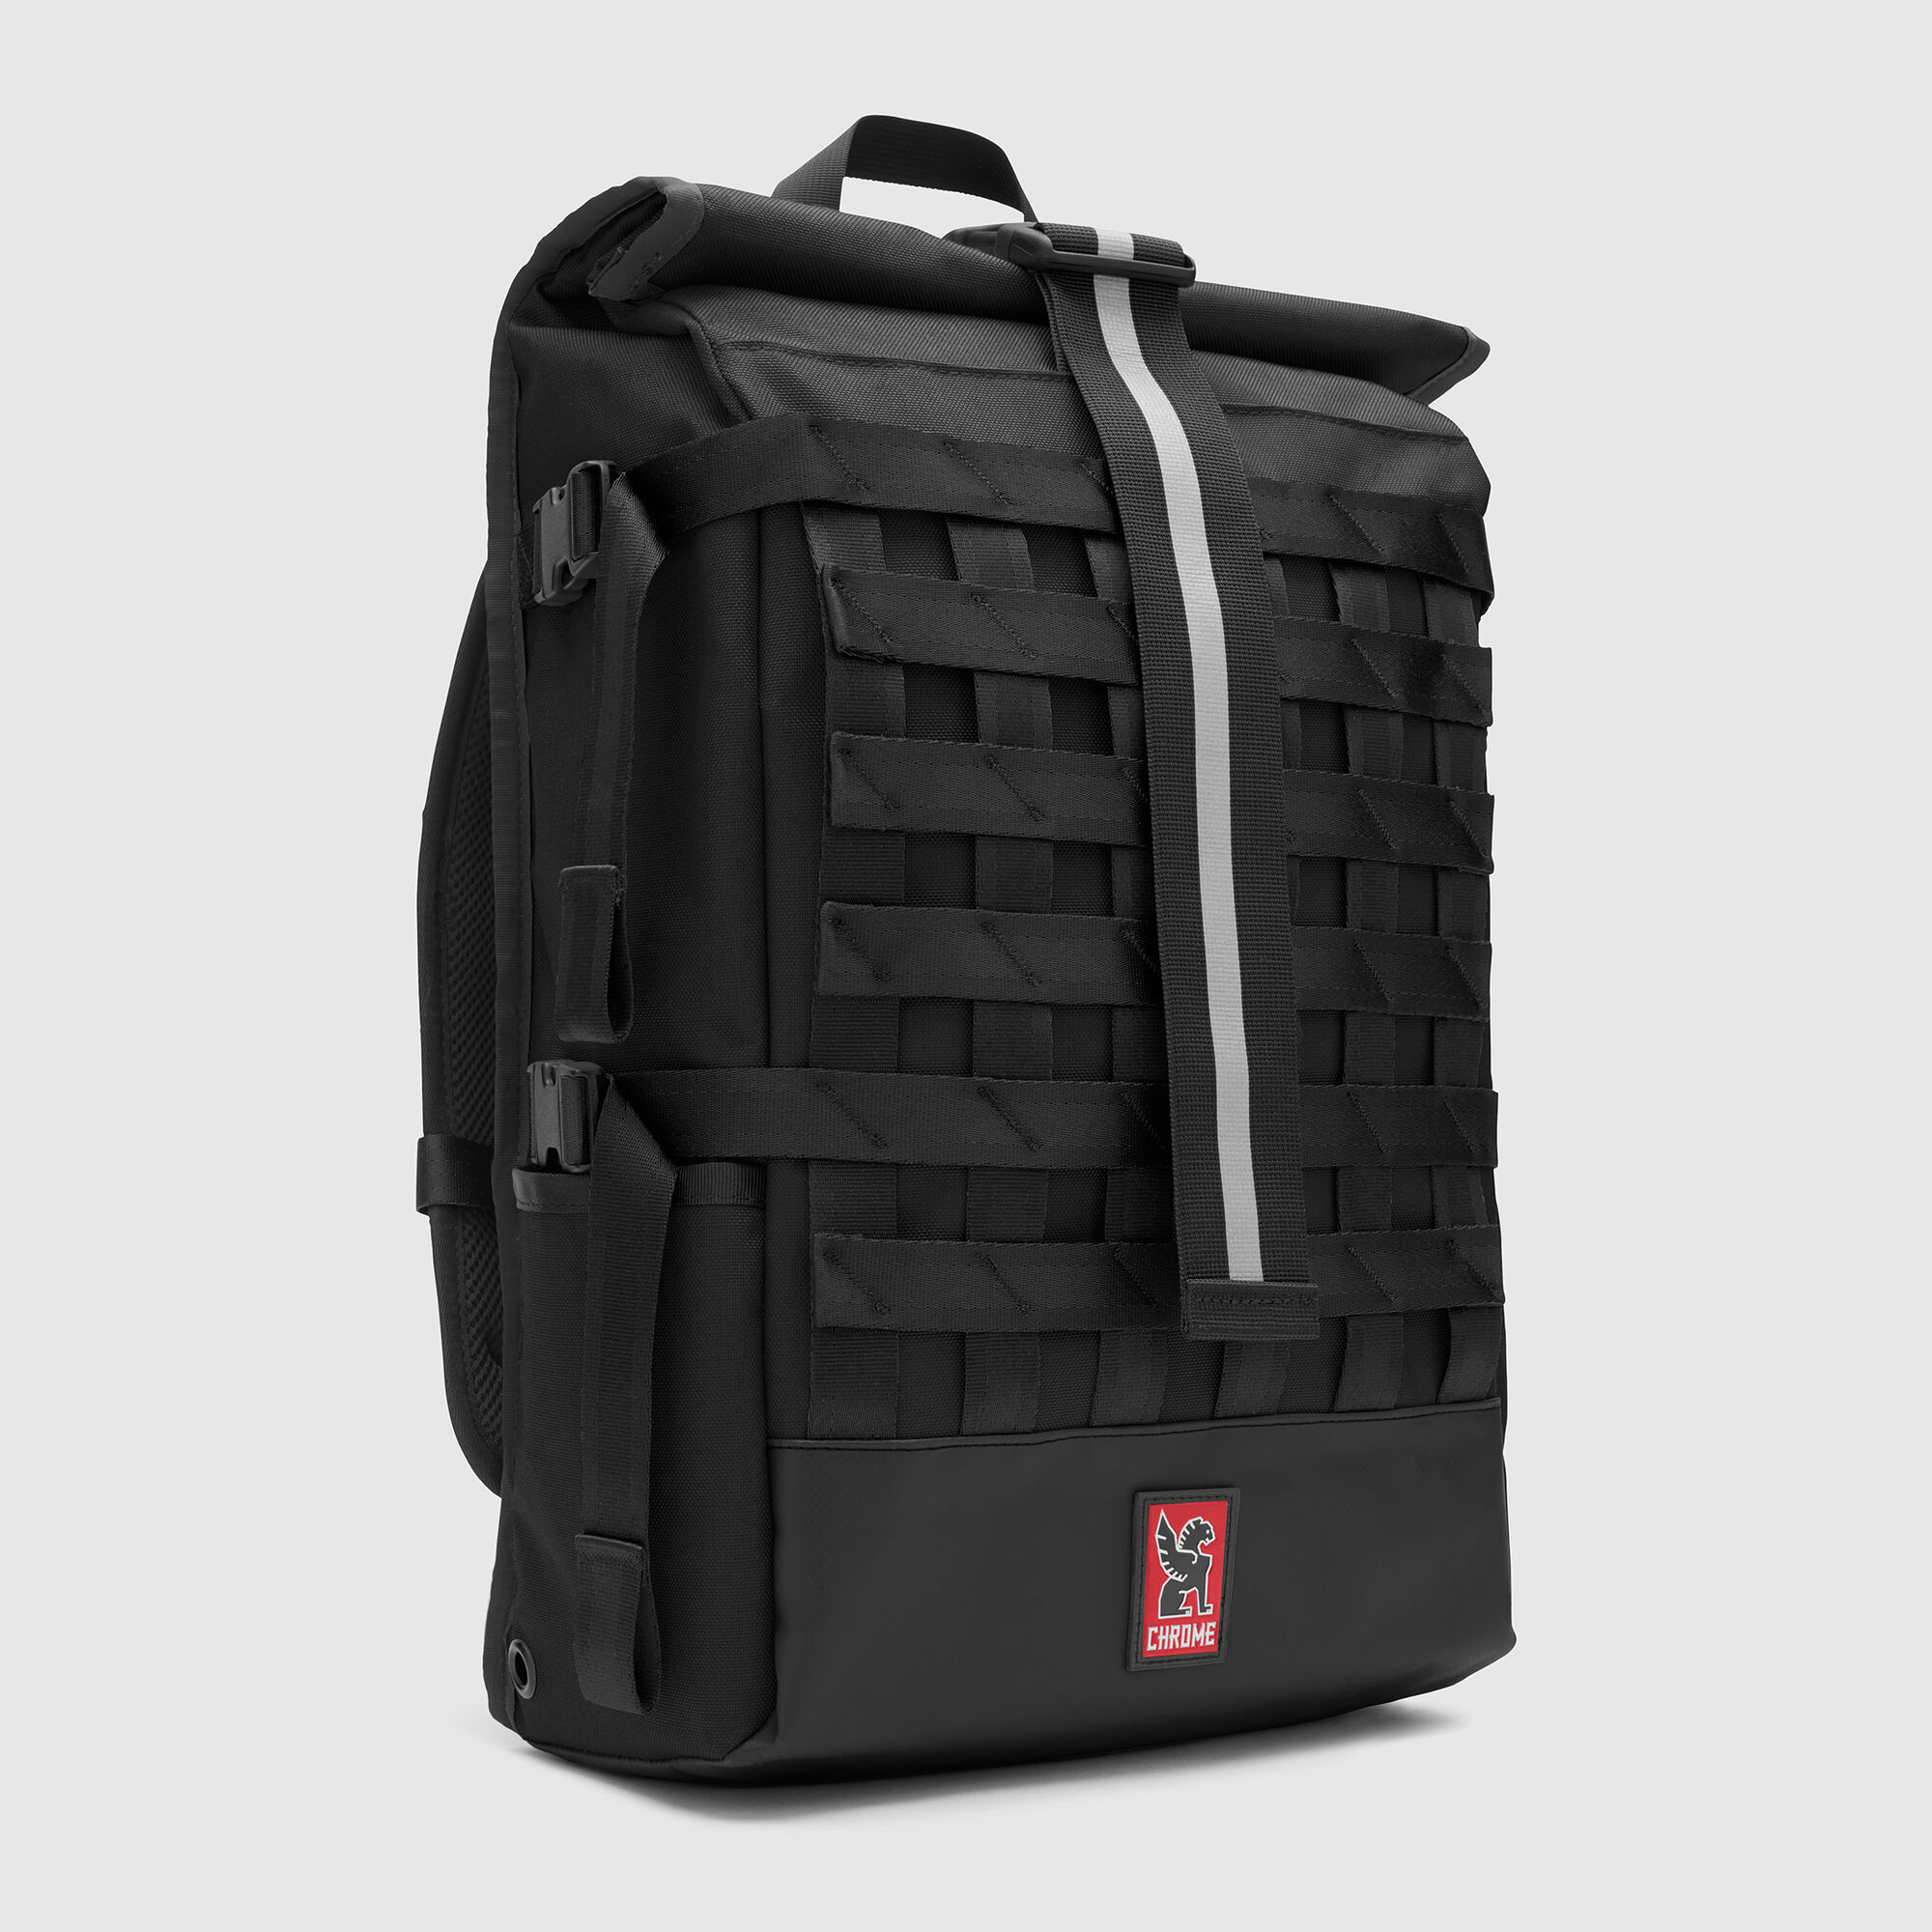 Barrage Cargo Backpack In Black Small View